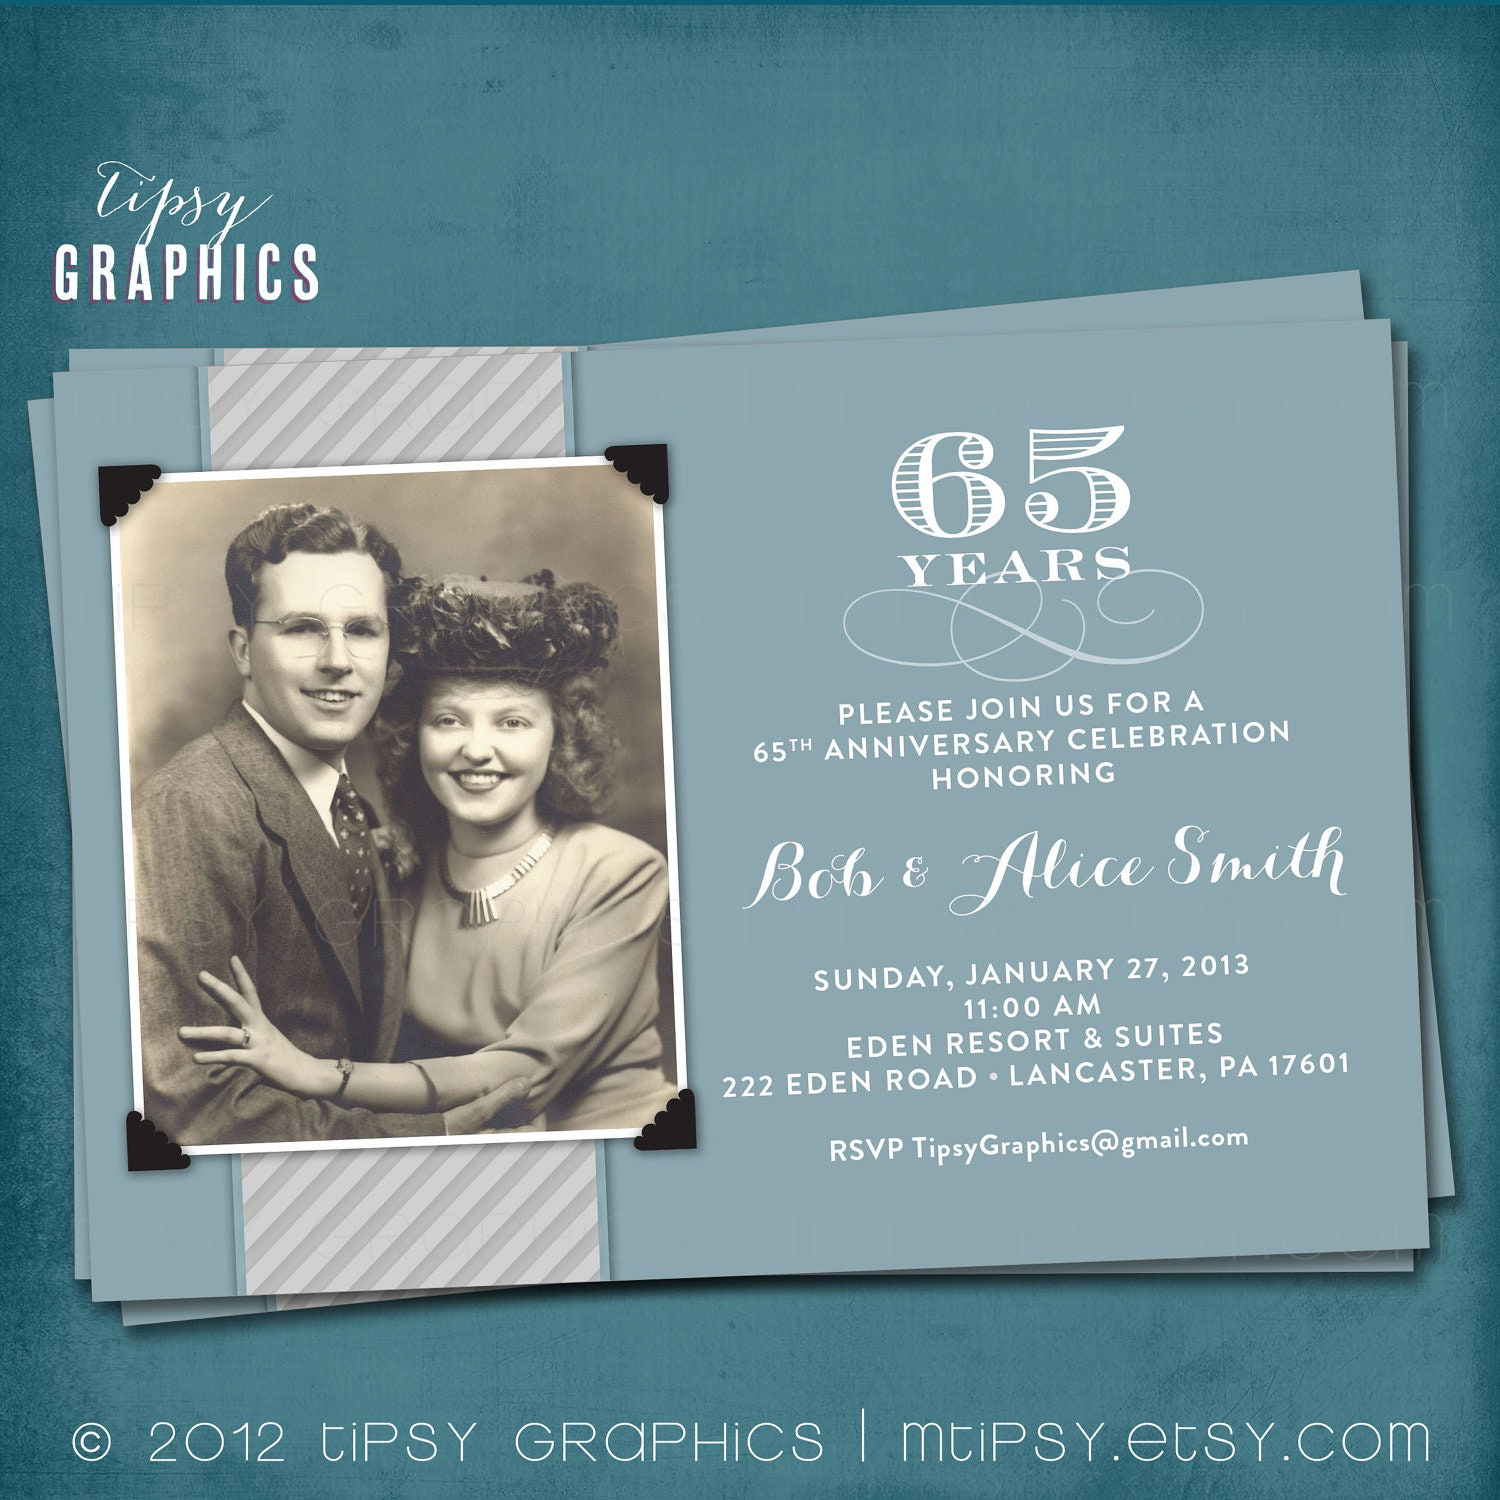 60Th Anniversary Invitation with amazing invitations ideas